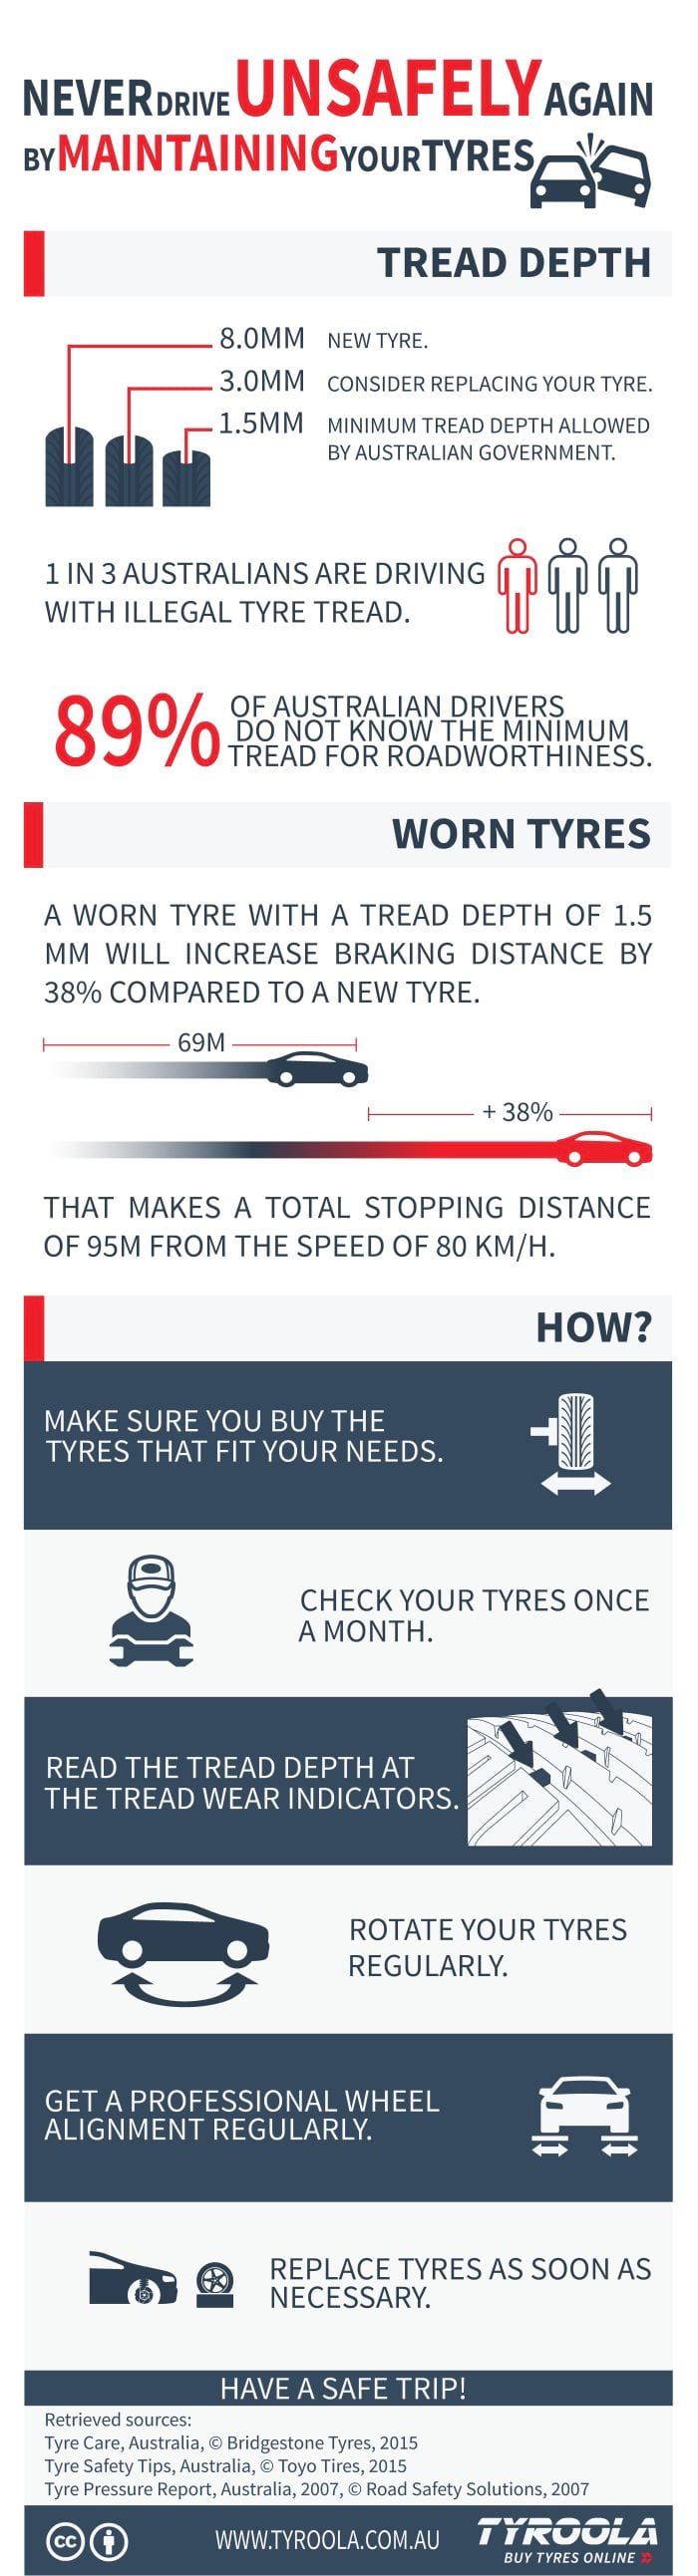 How to make sure your tread depth is not illegal